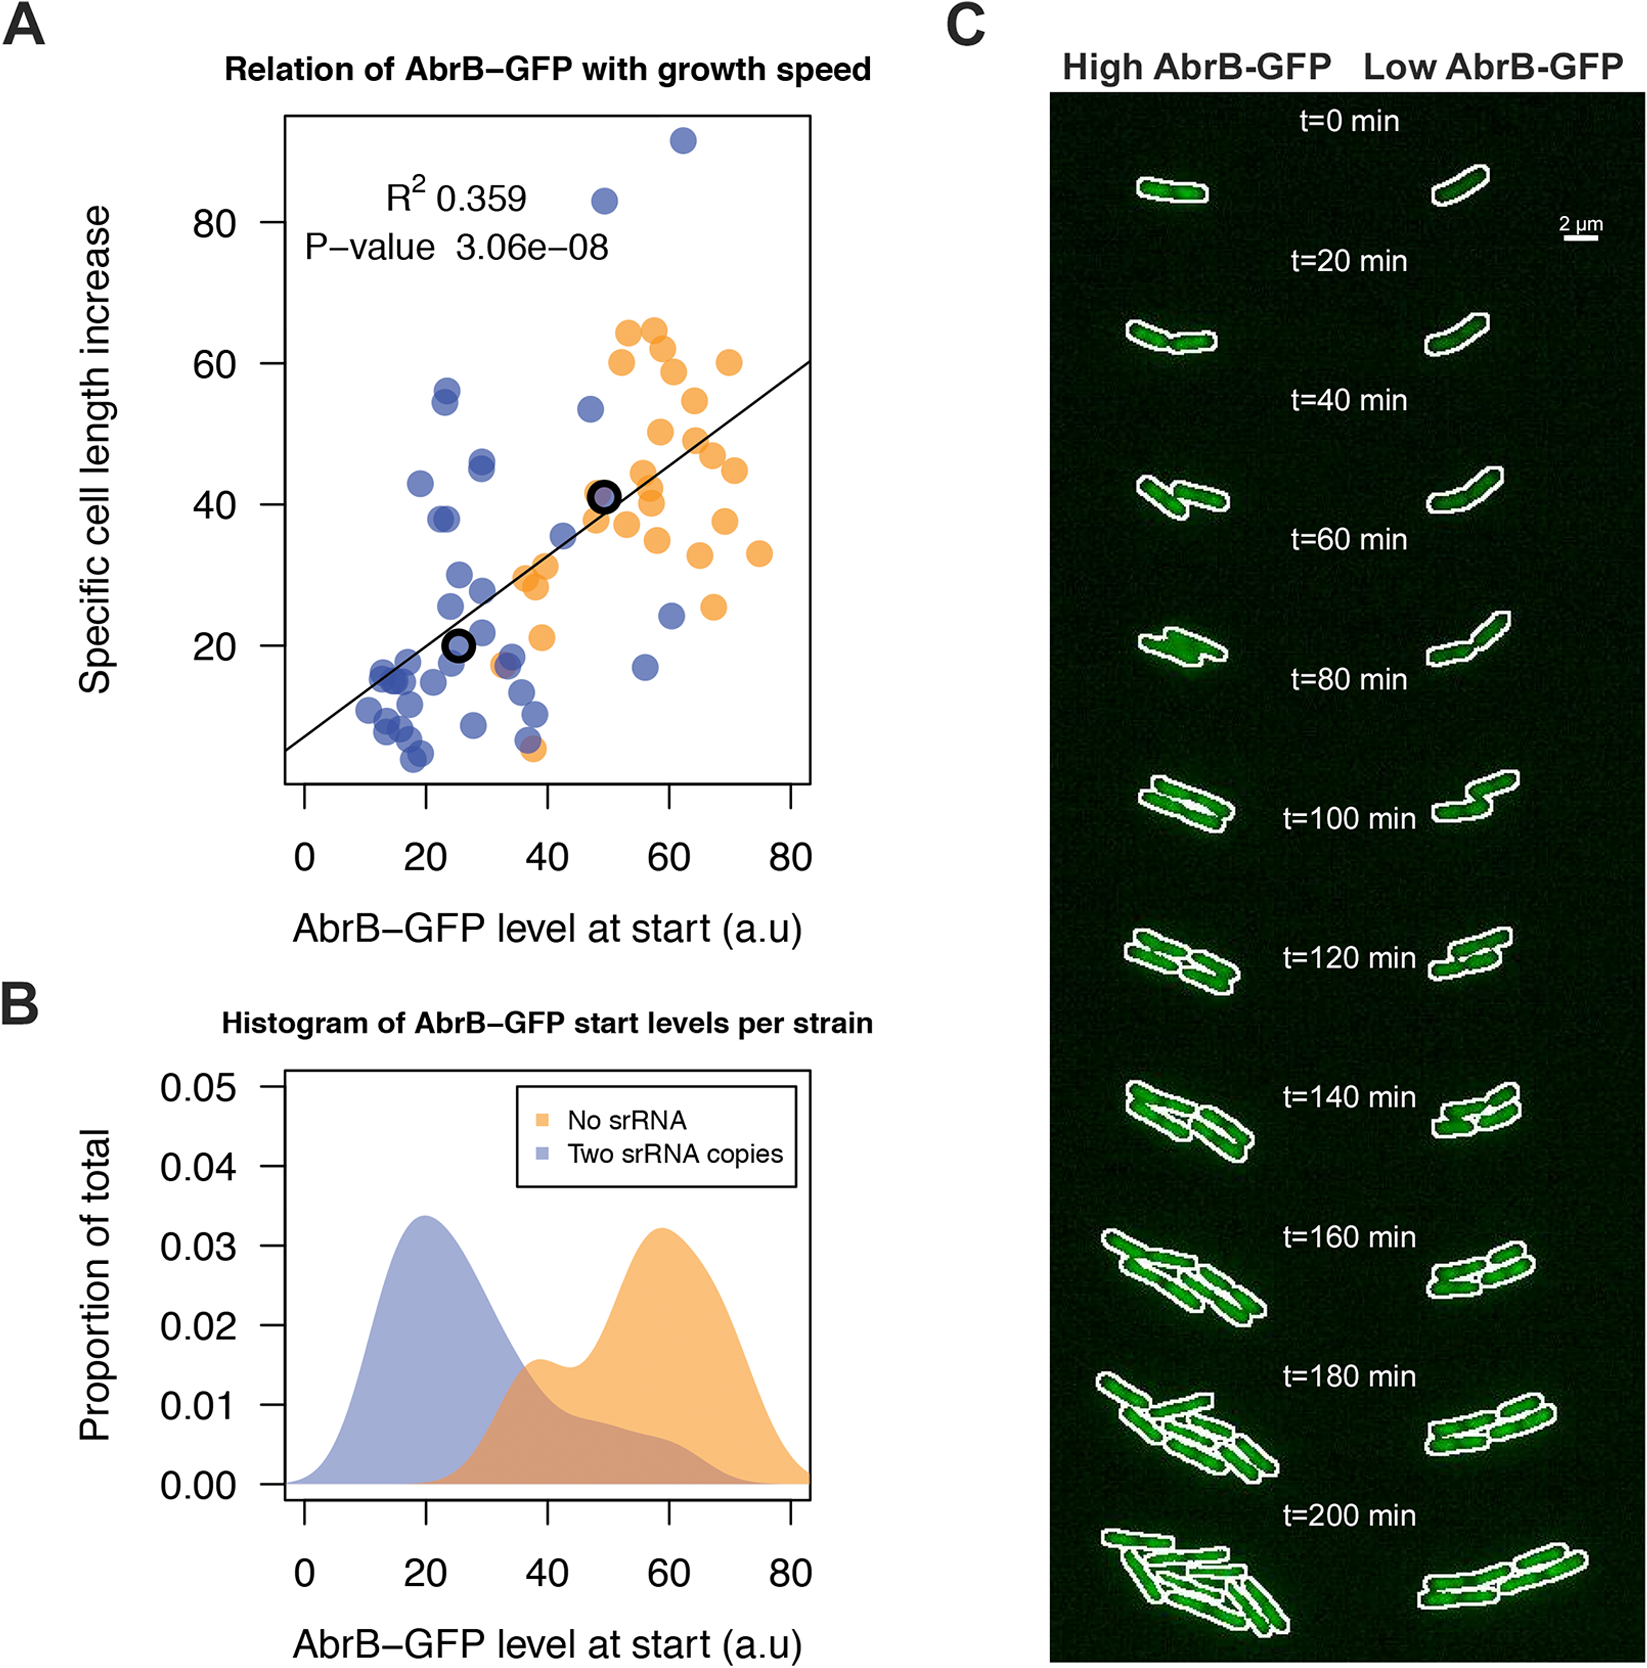 RnaC/S1022-induced variation in AbrB-GFP levels leads to heterogeneity in growth rates.